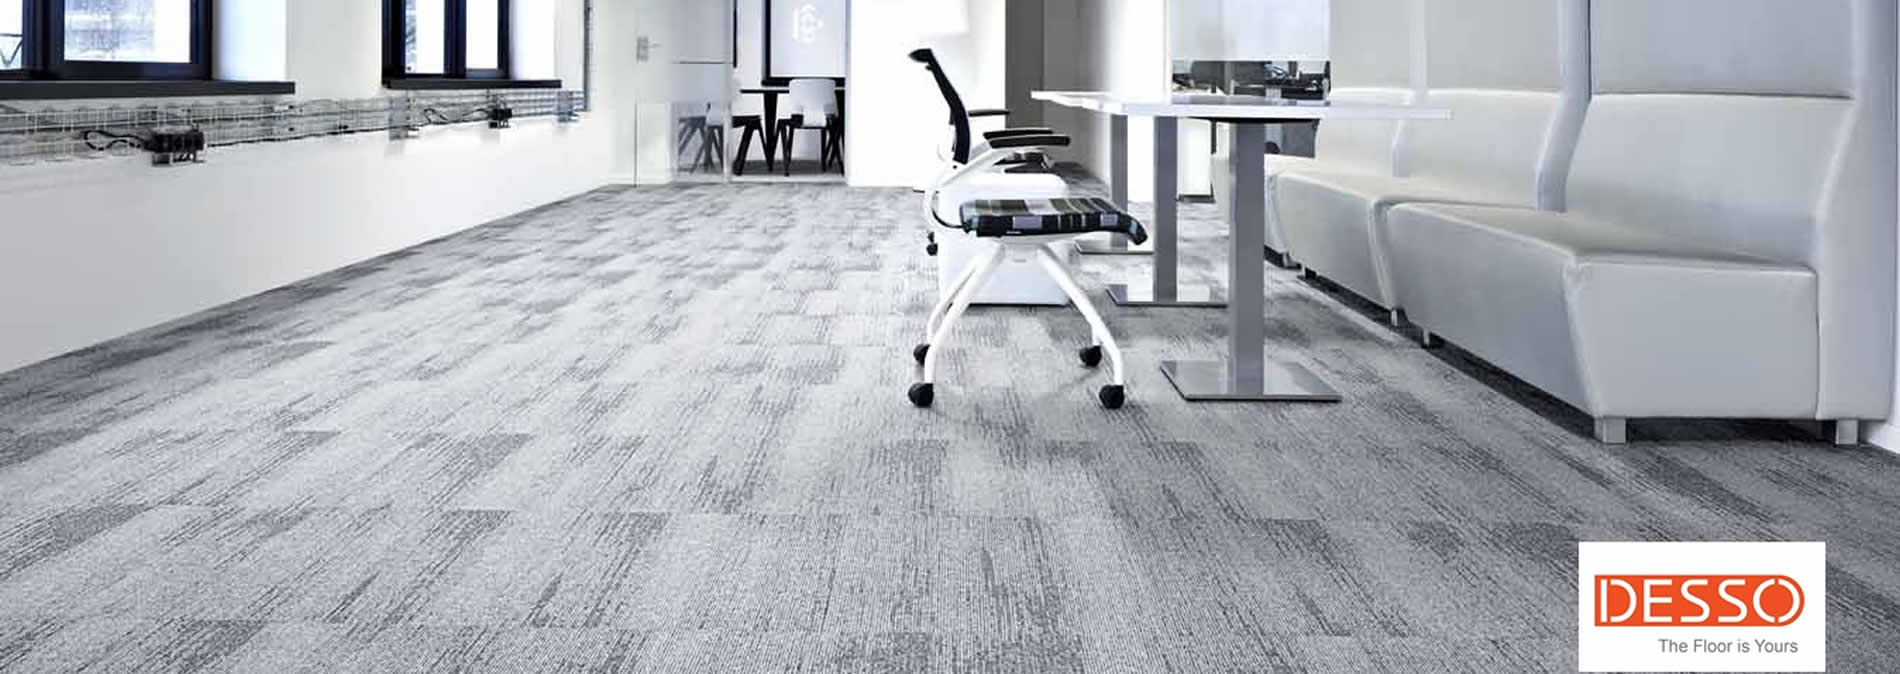 Carpet tile installation contract carpet tile installers carpet tile dailygadgetfo Choice Image